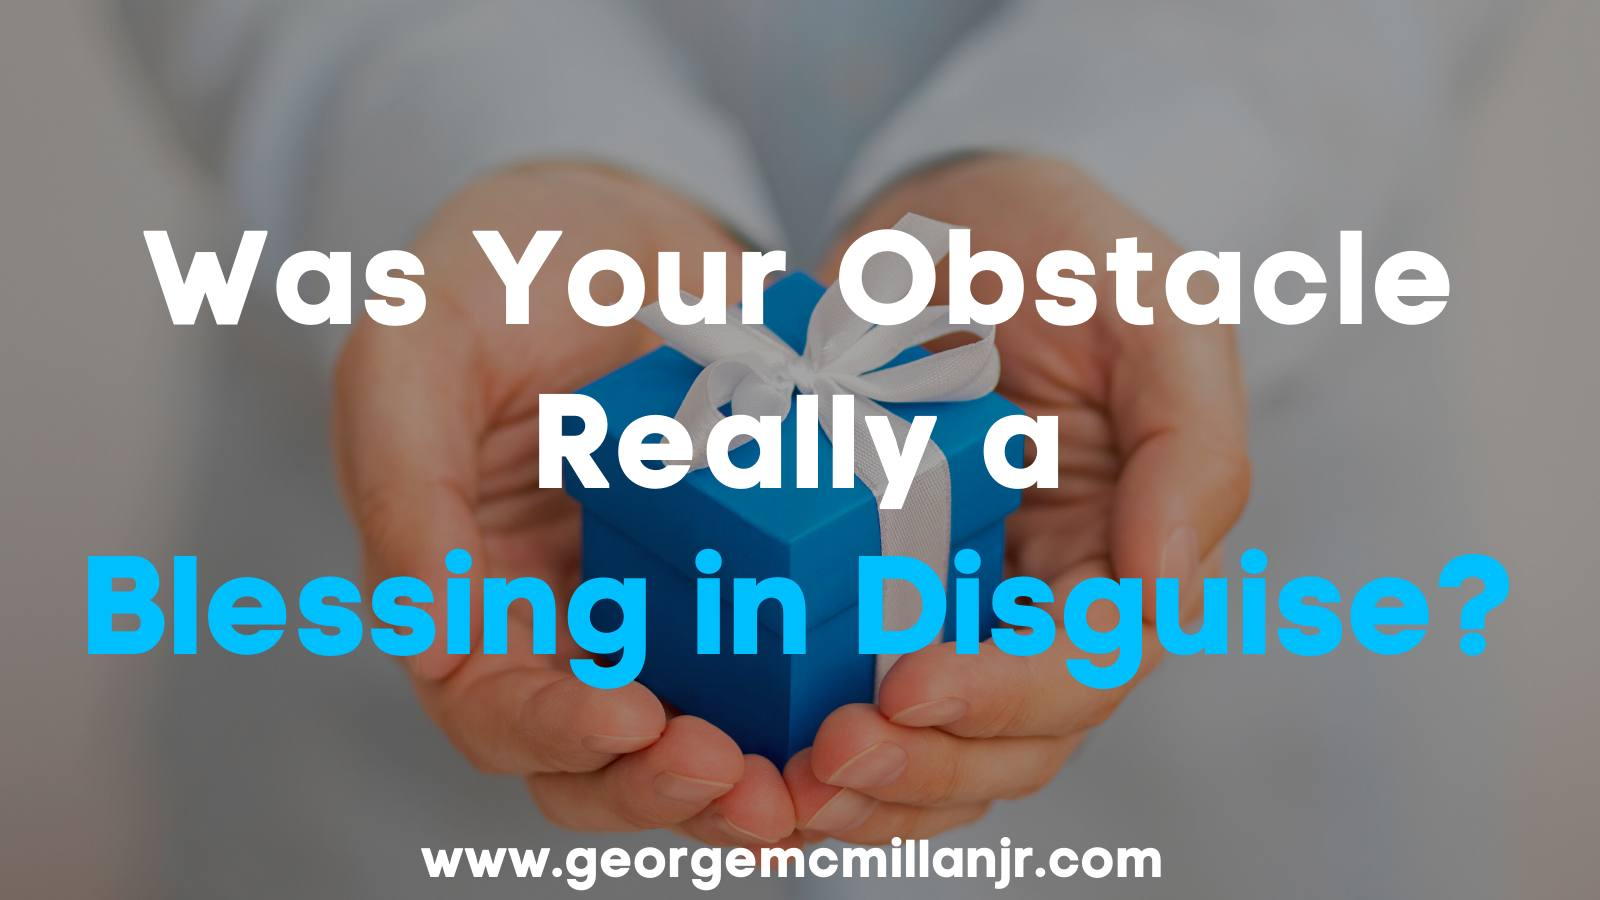 A blog post featured image of hands holding a blue and white gift with the title Was Your Obstacle Really a Blessing in Disguise?